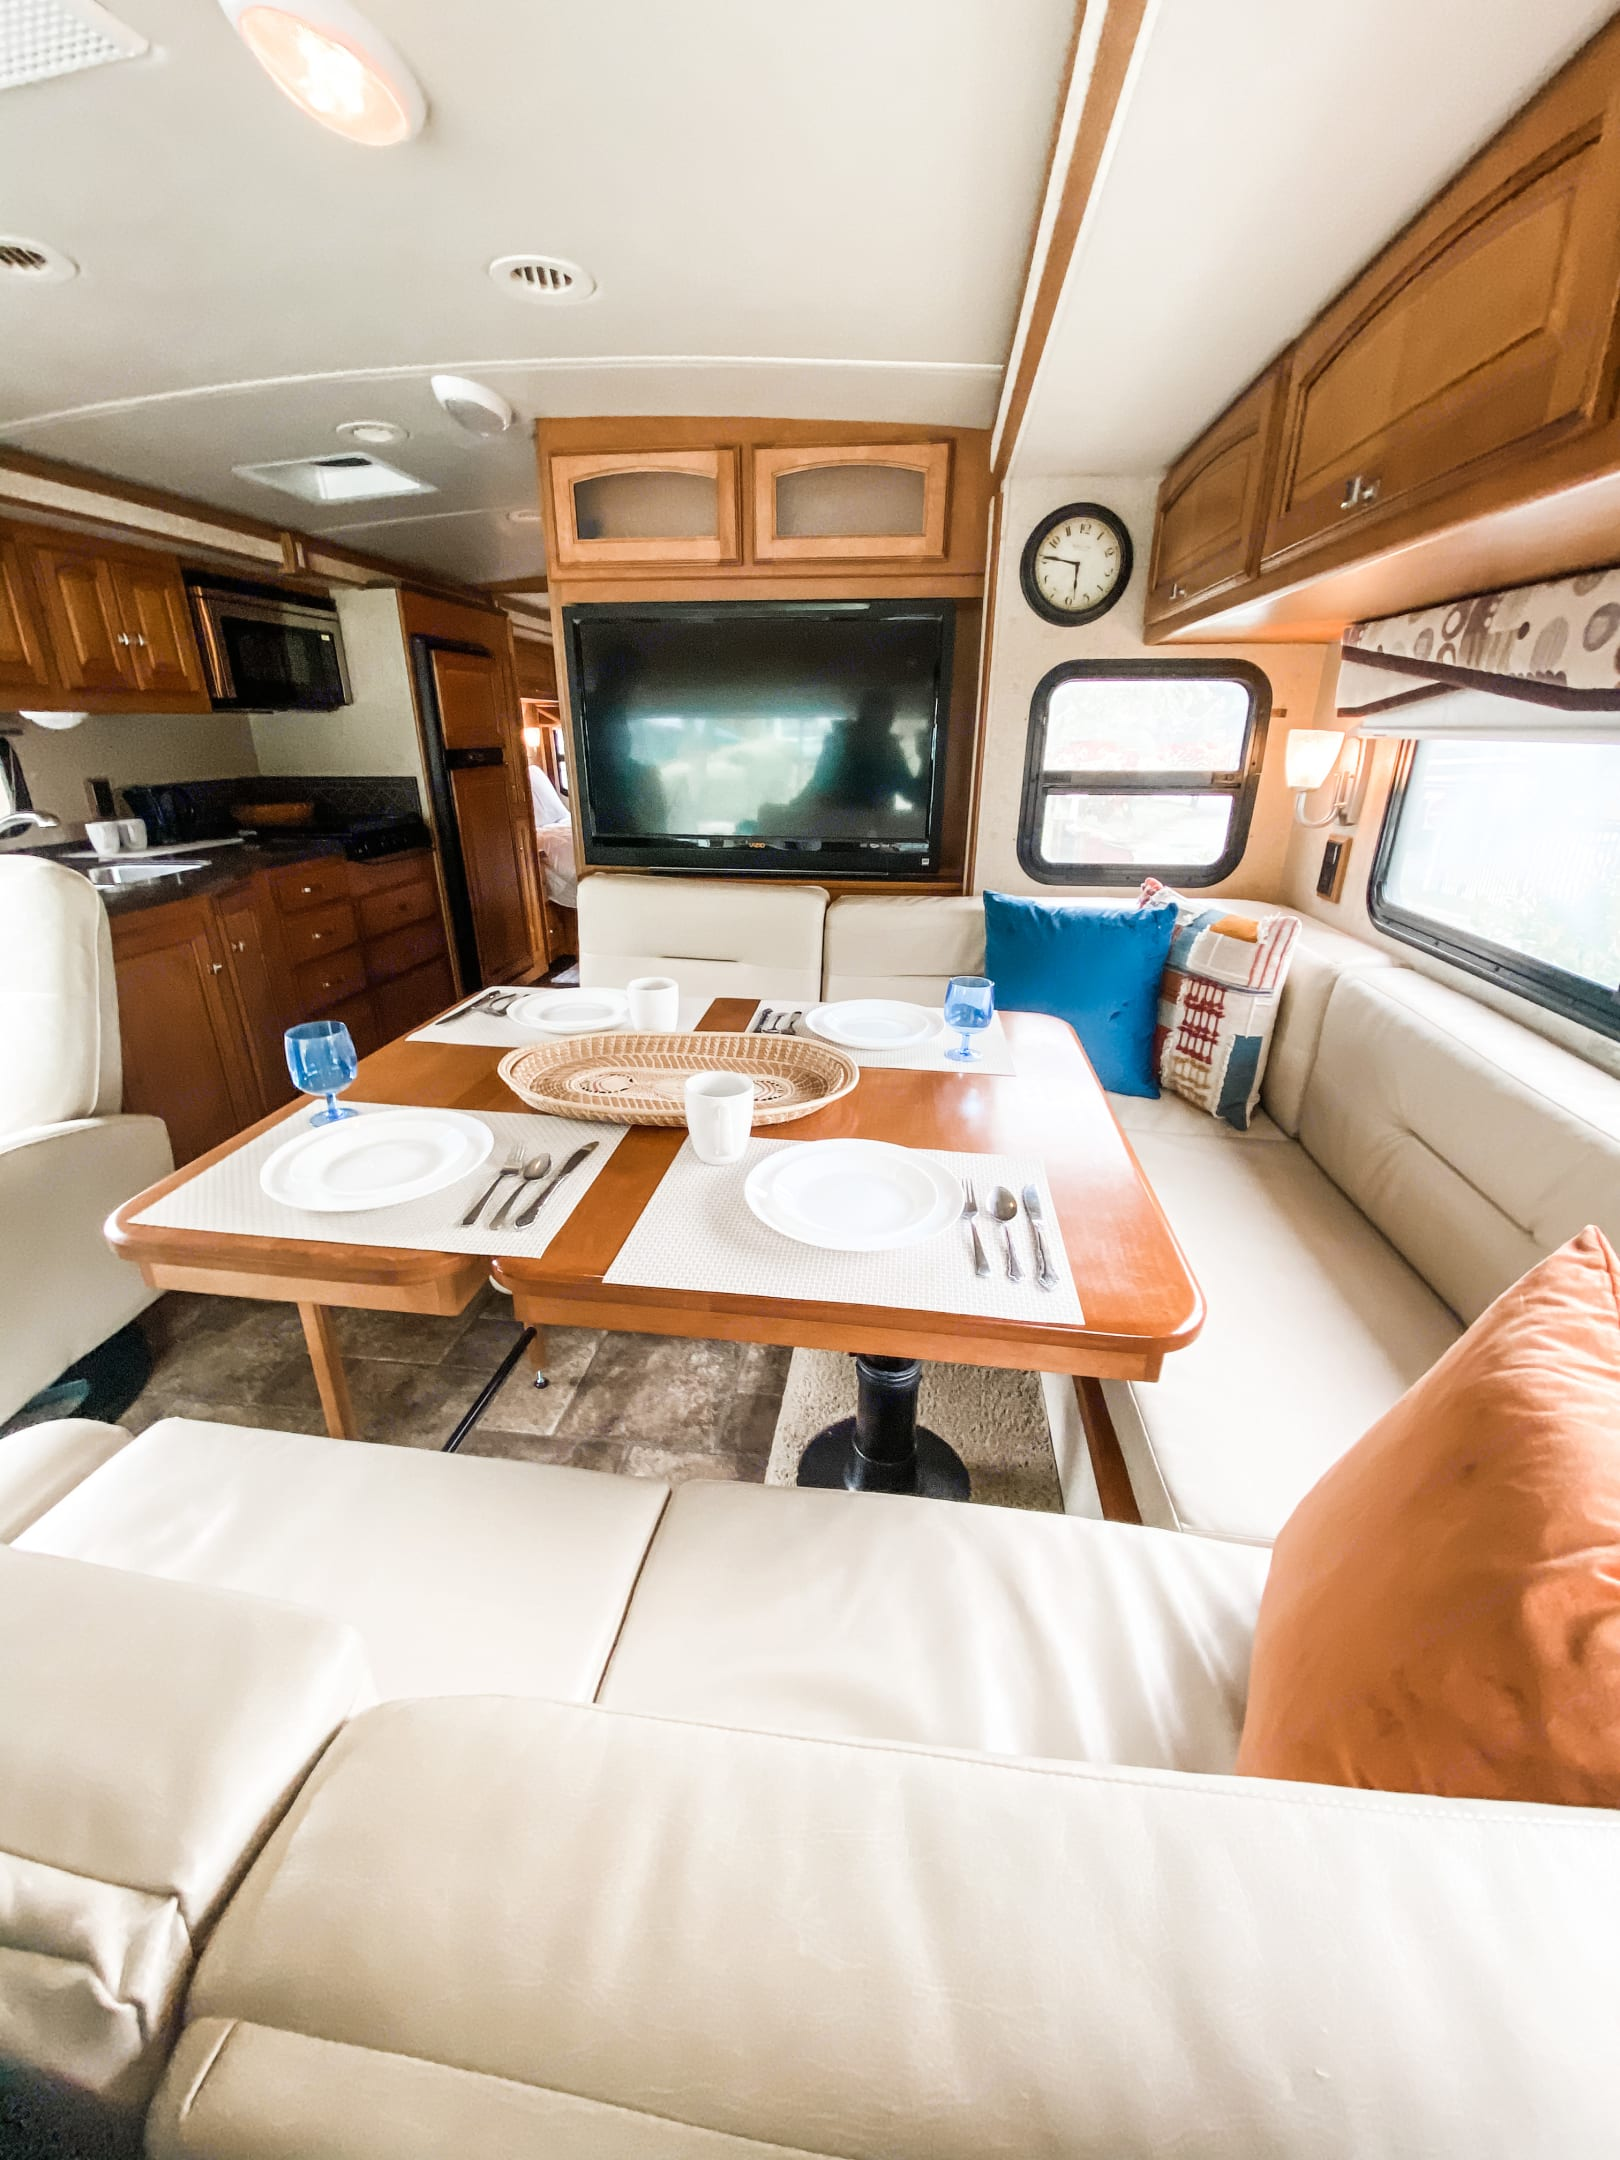 The dining table extension provides ample space for family dining or a large workspace for remote work. The leather benches are very comfortable. . Winnebago Sightseer 2013